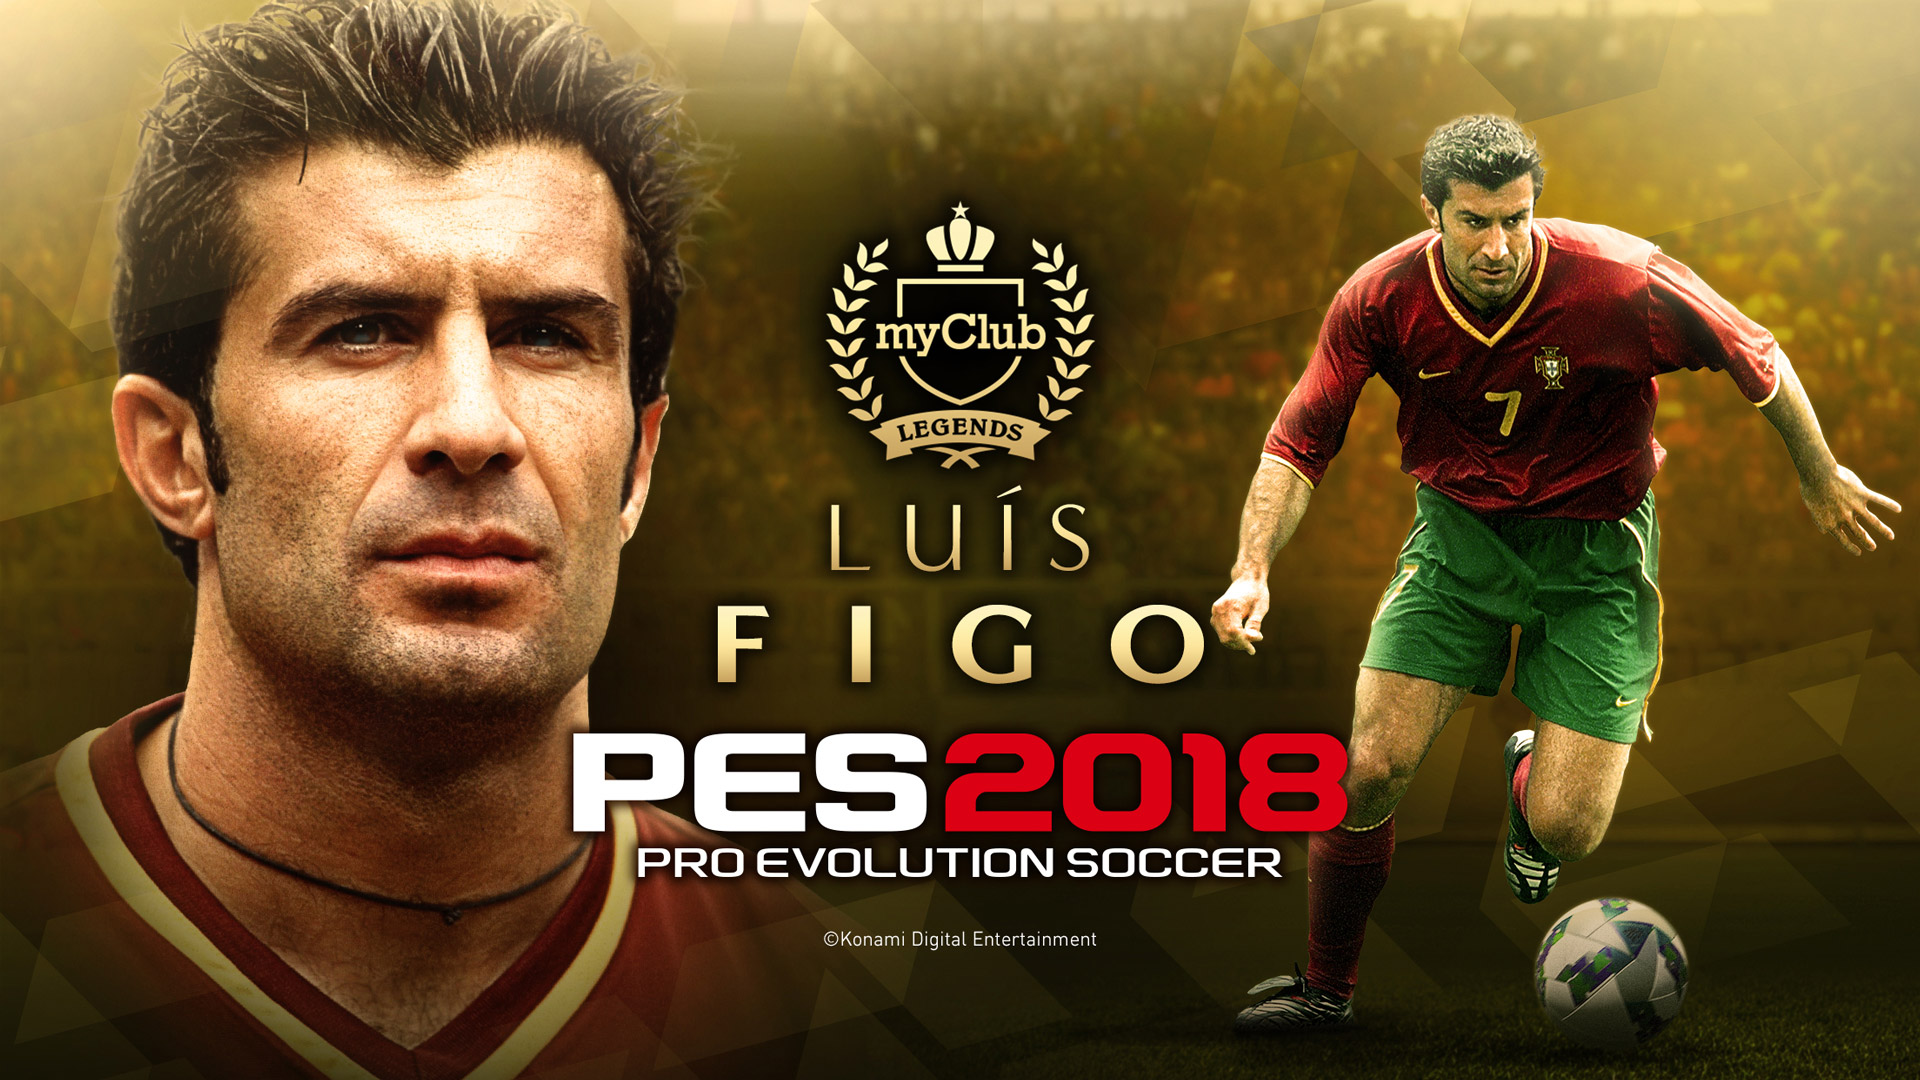 Portuguese Legend Lus Figo is coming to Pro Evolution Soccer 2018 1920x1080